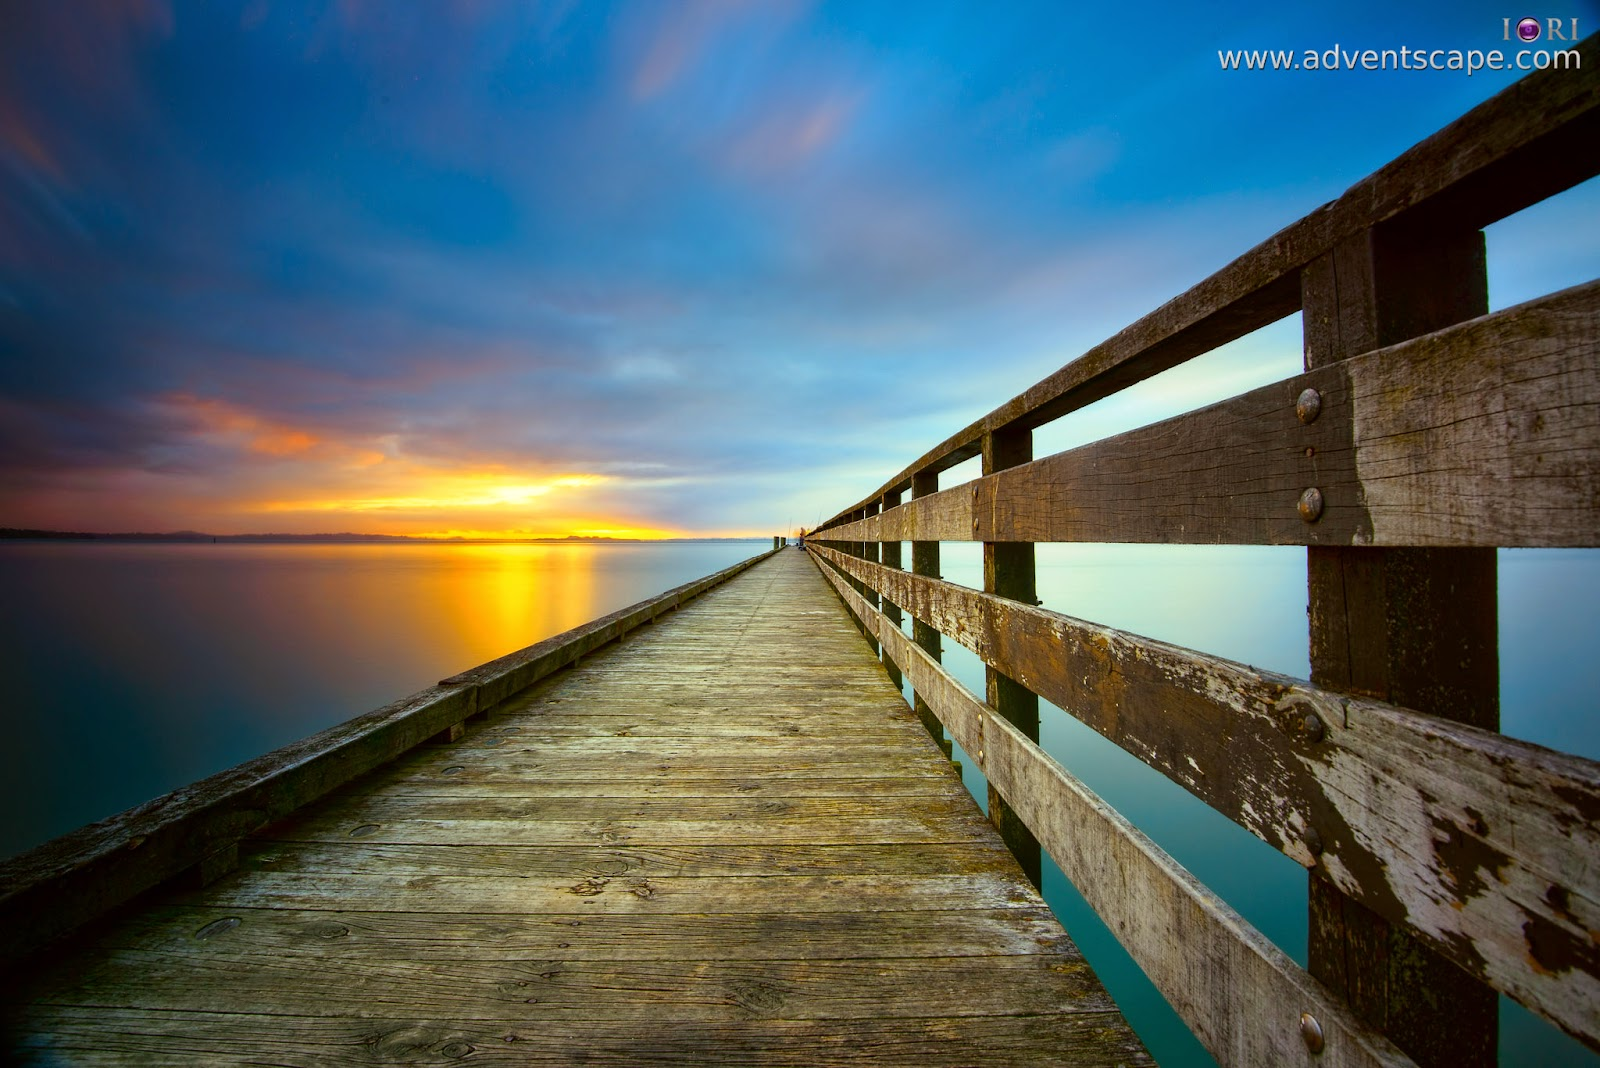 Philip Avellana, iori, adventscape, Cornwallis, jetty, seascape, landscape, North Island, New Zealand, fine art, sunrise, low angle